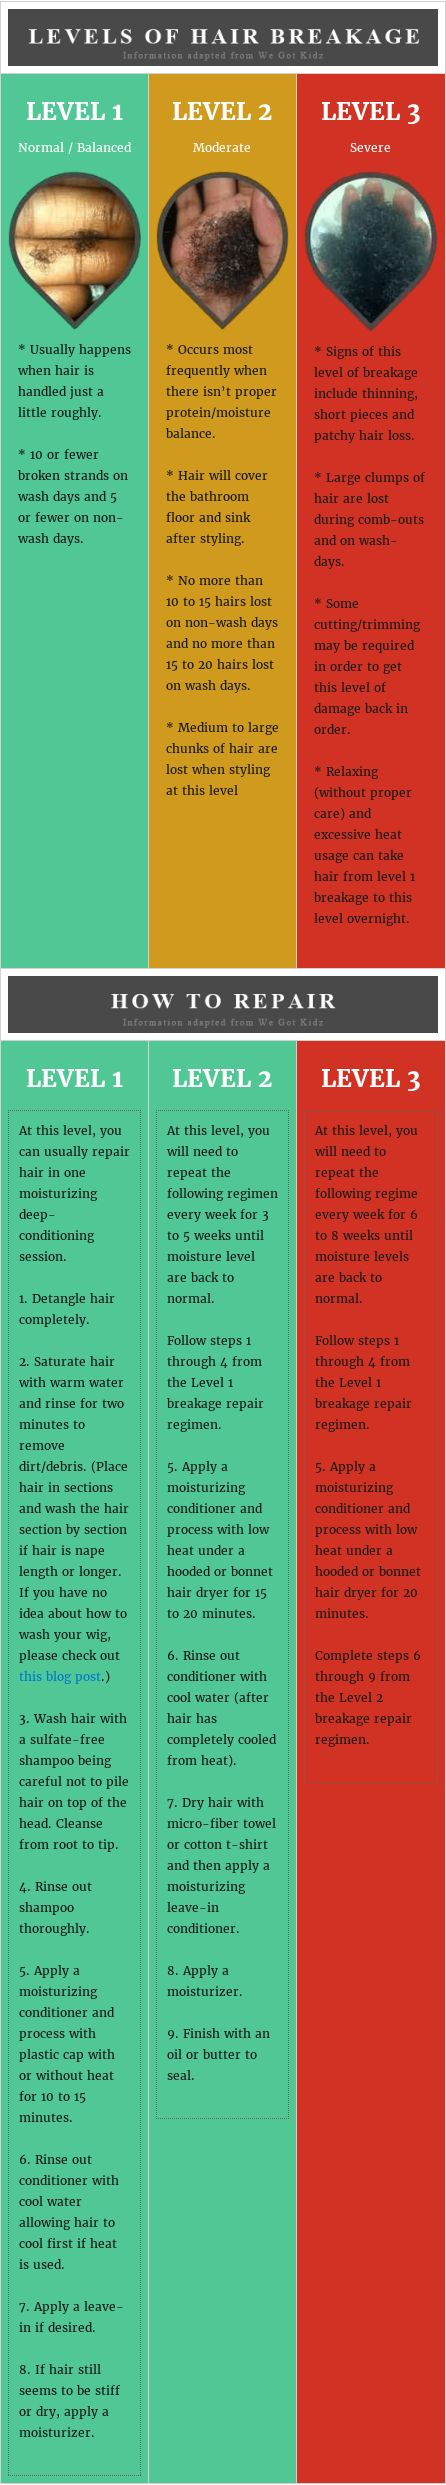 The biggest culprit when it comes to fussy natural hair is breakage which gets in the way of length retention, softness, and strong strands. There are three levels of hair breakage that African American women have to deal with. If you want to learn more about the levels and how to repair damaged hair, please check out the details down below. Check out the picture to learn more about how to repair damaged hair.